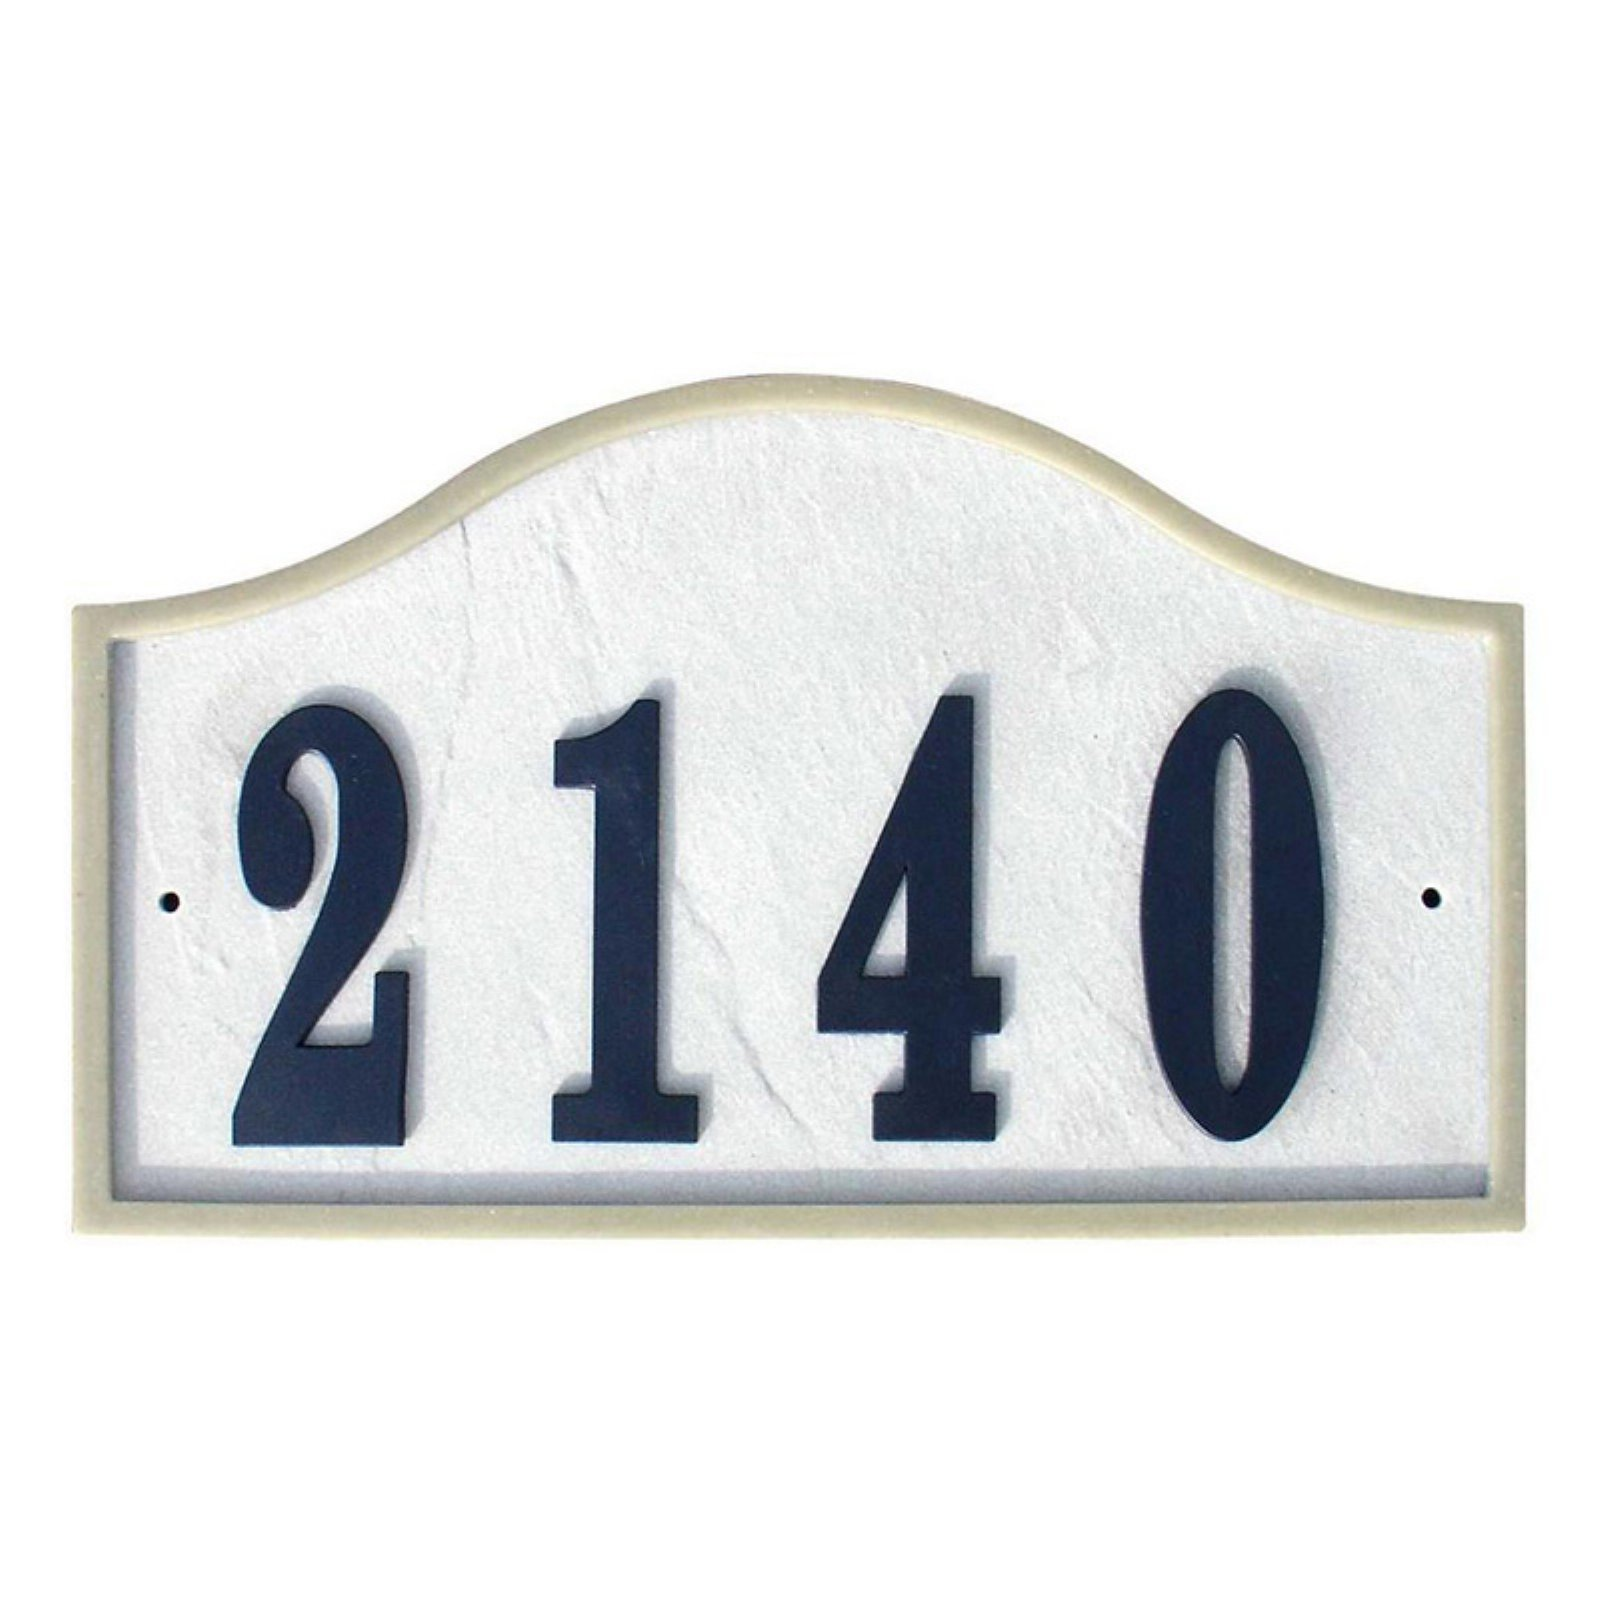 QualArc Ridgestone DIY Serpentine Stone Address Plaque by Qualarc, Inc.